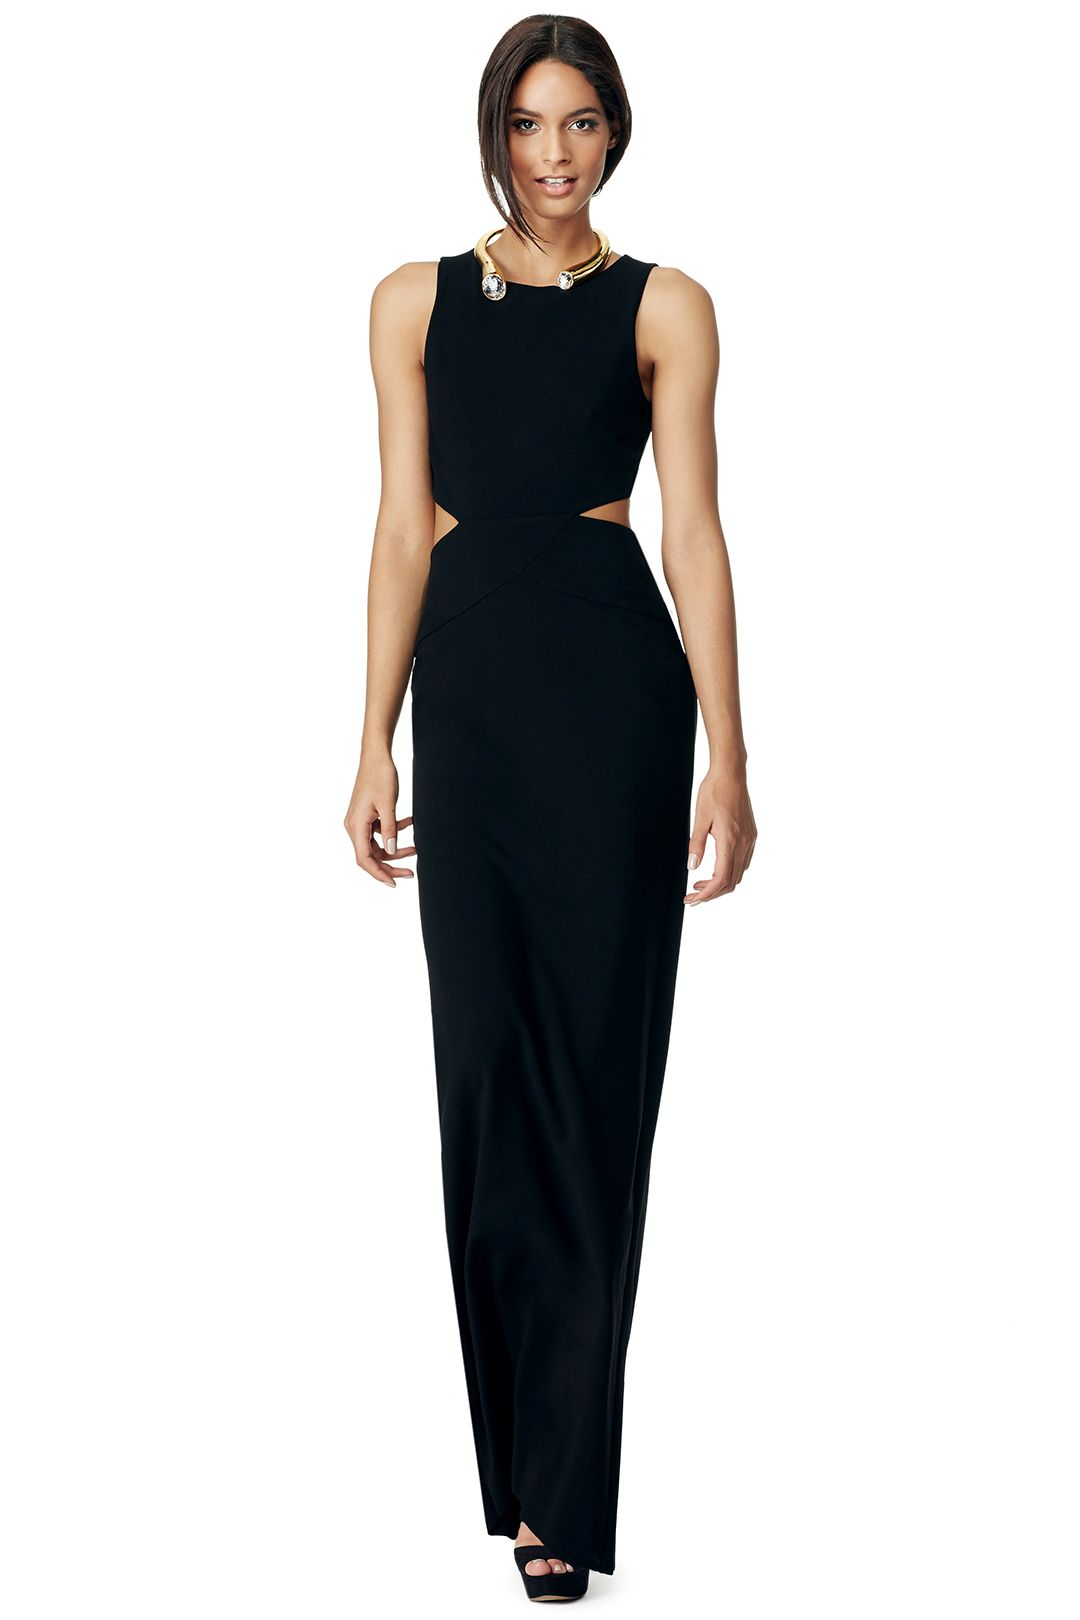 Sleek mila gown by nicole miller for 90 rent the runway sleek mila gown by nicole miller for 90 rent the runway ombrellifo Images